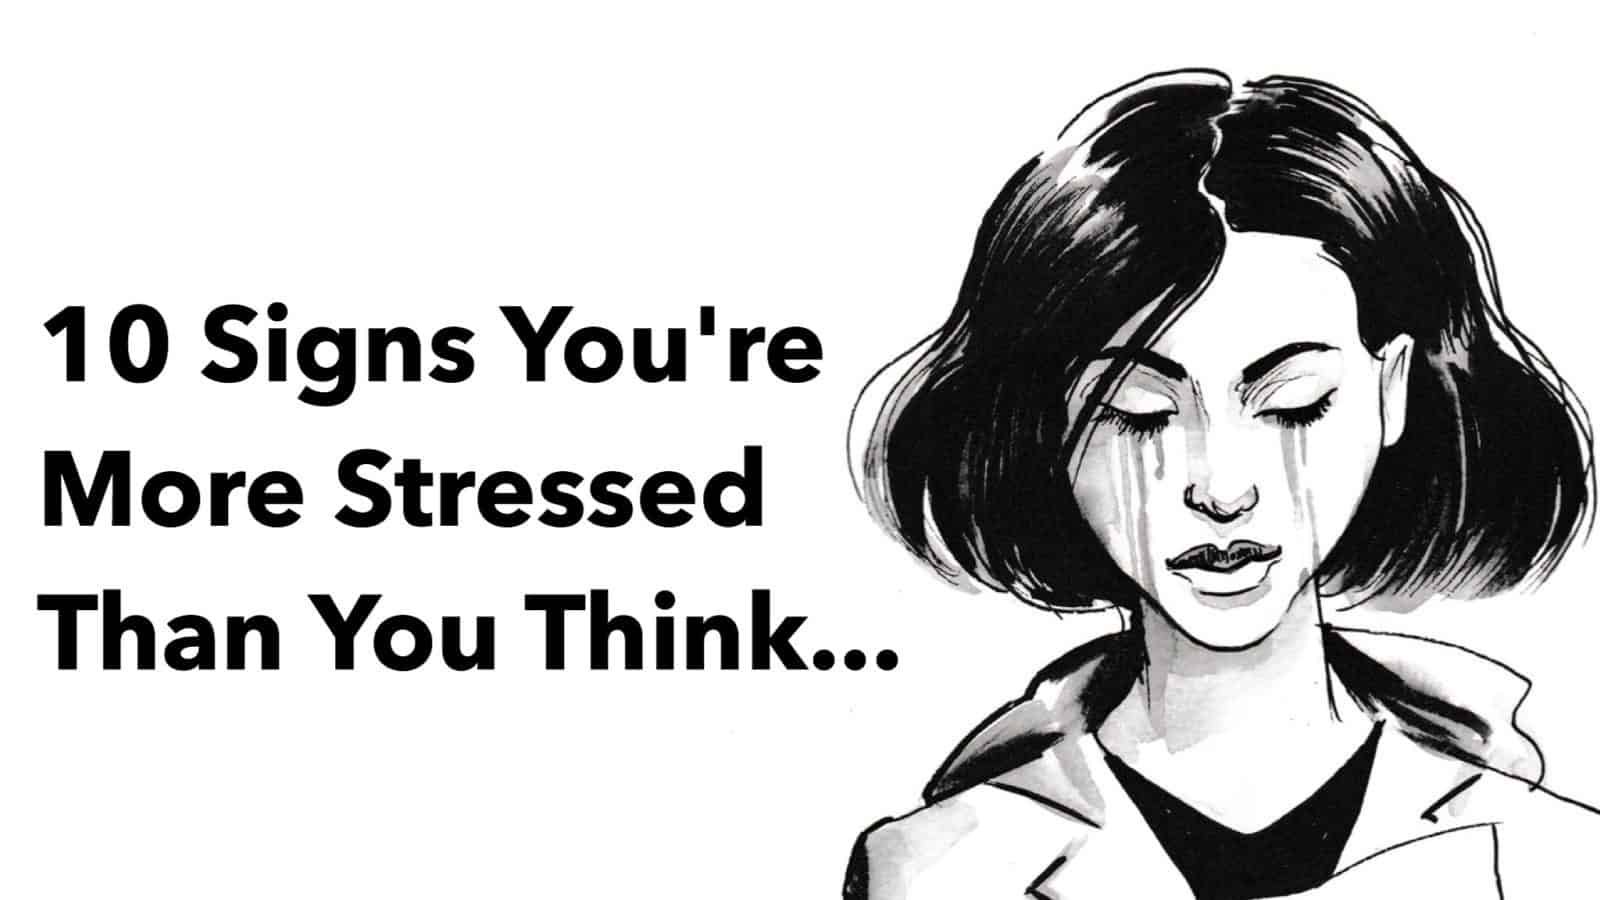 10 Signs You Re More Stressed Than You Think